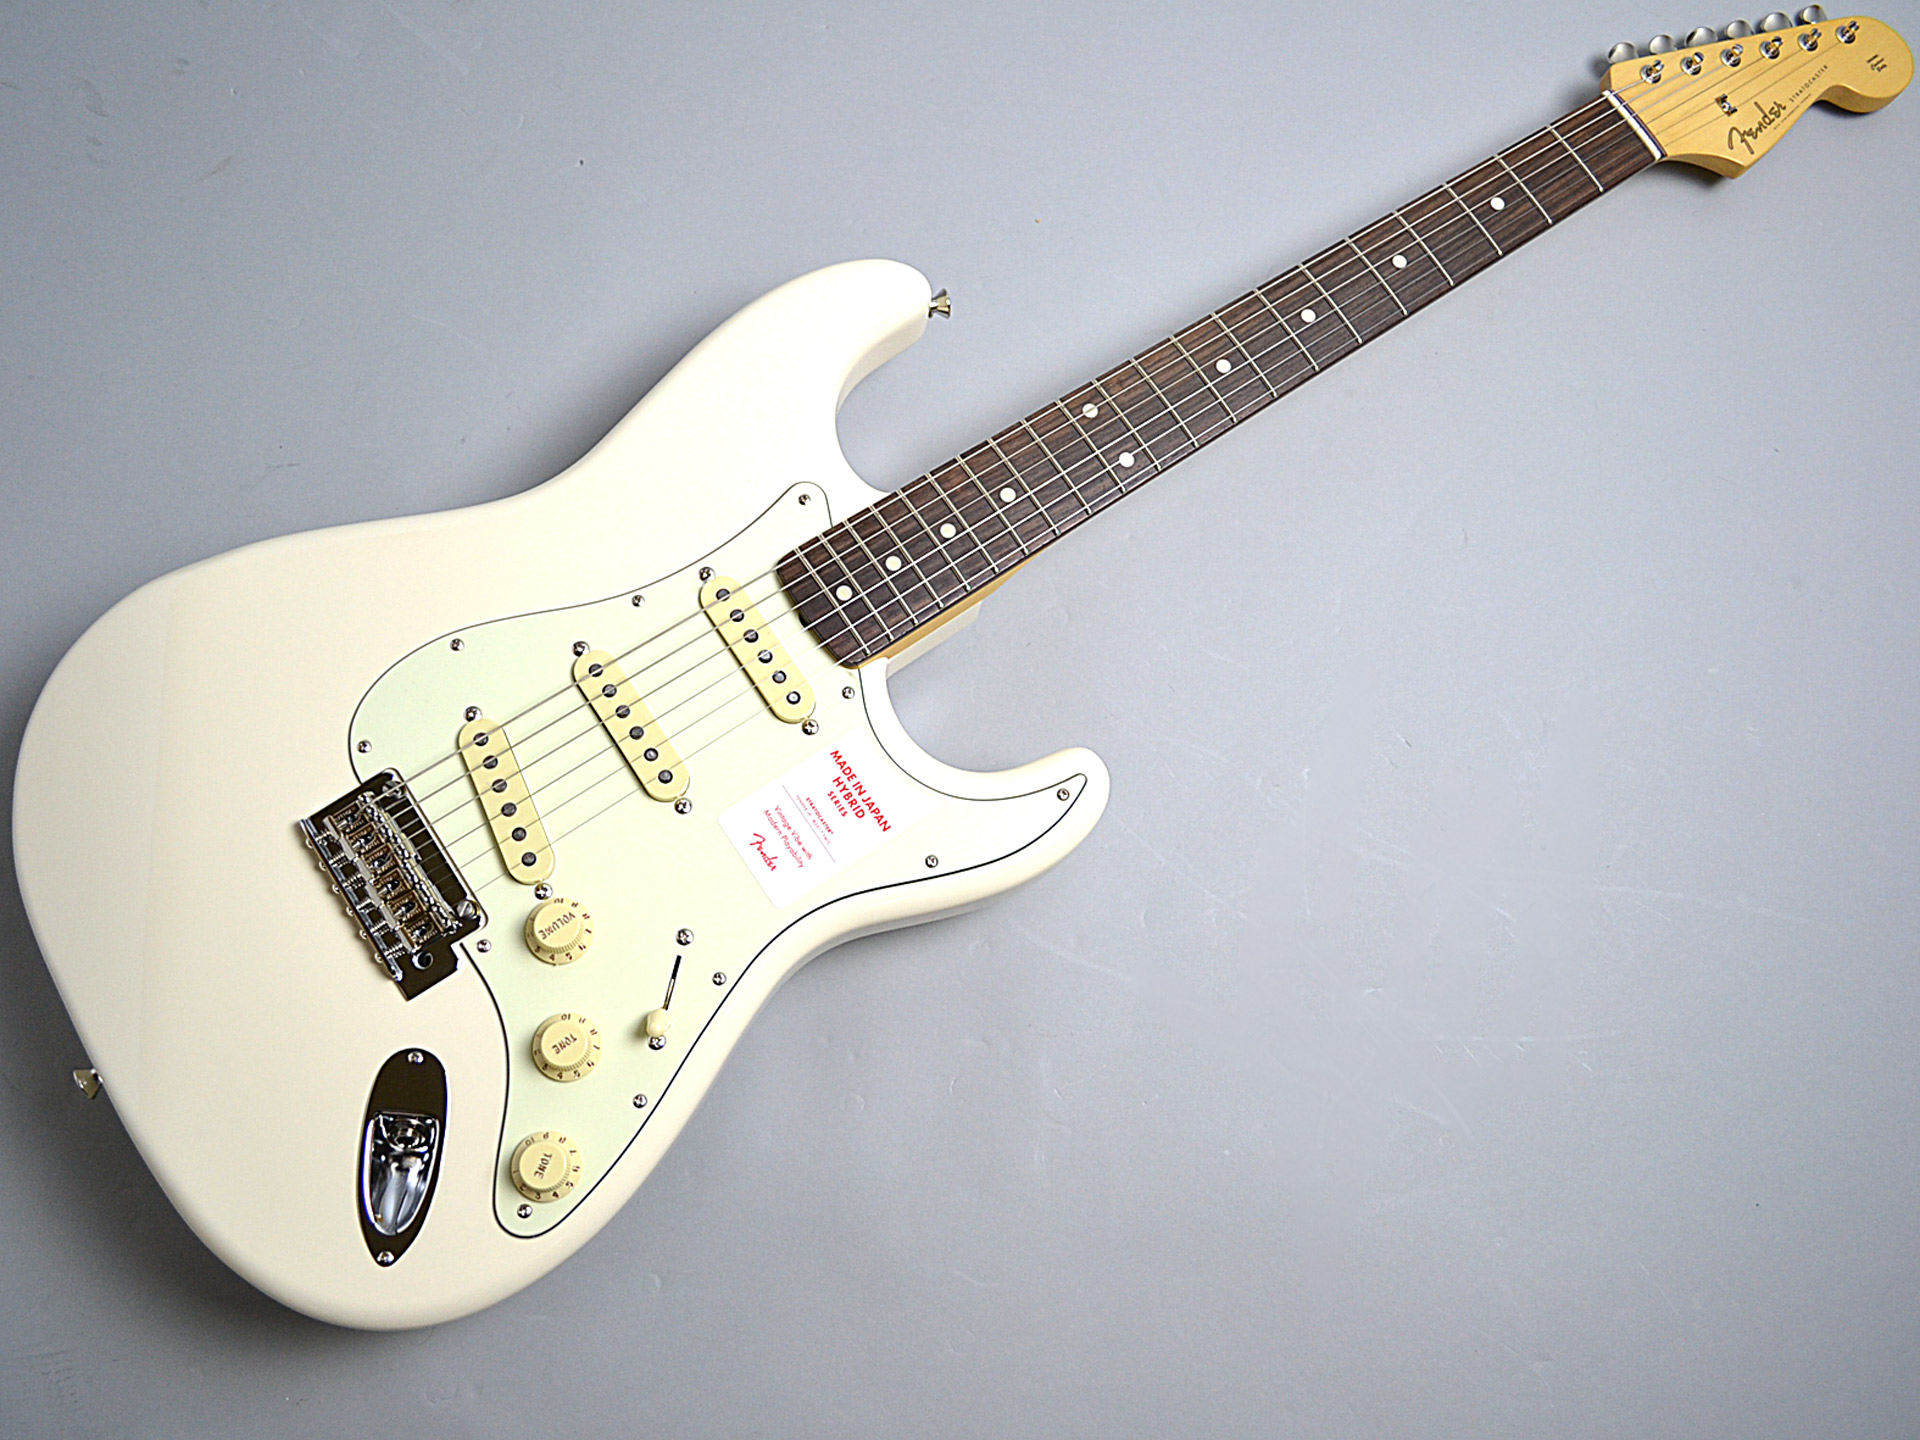 MADE IN JAPAN HYBRID 60S STRATOCASTER